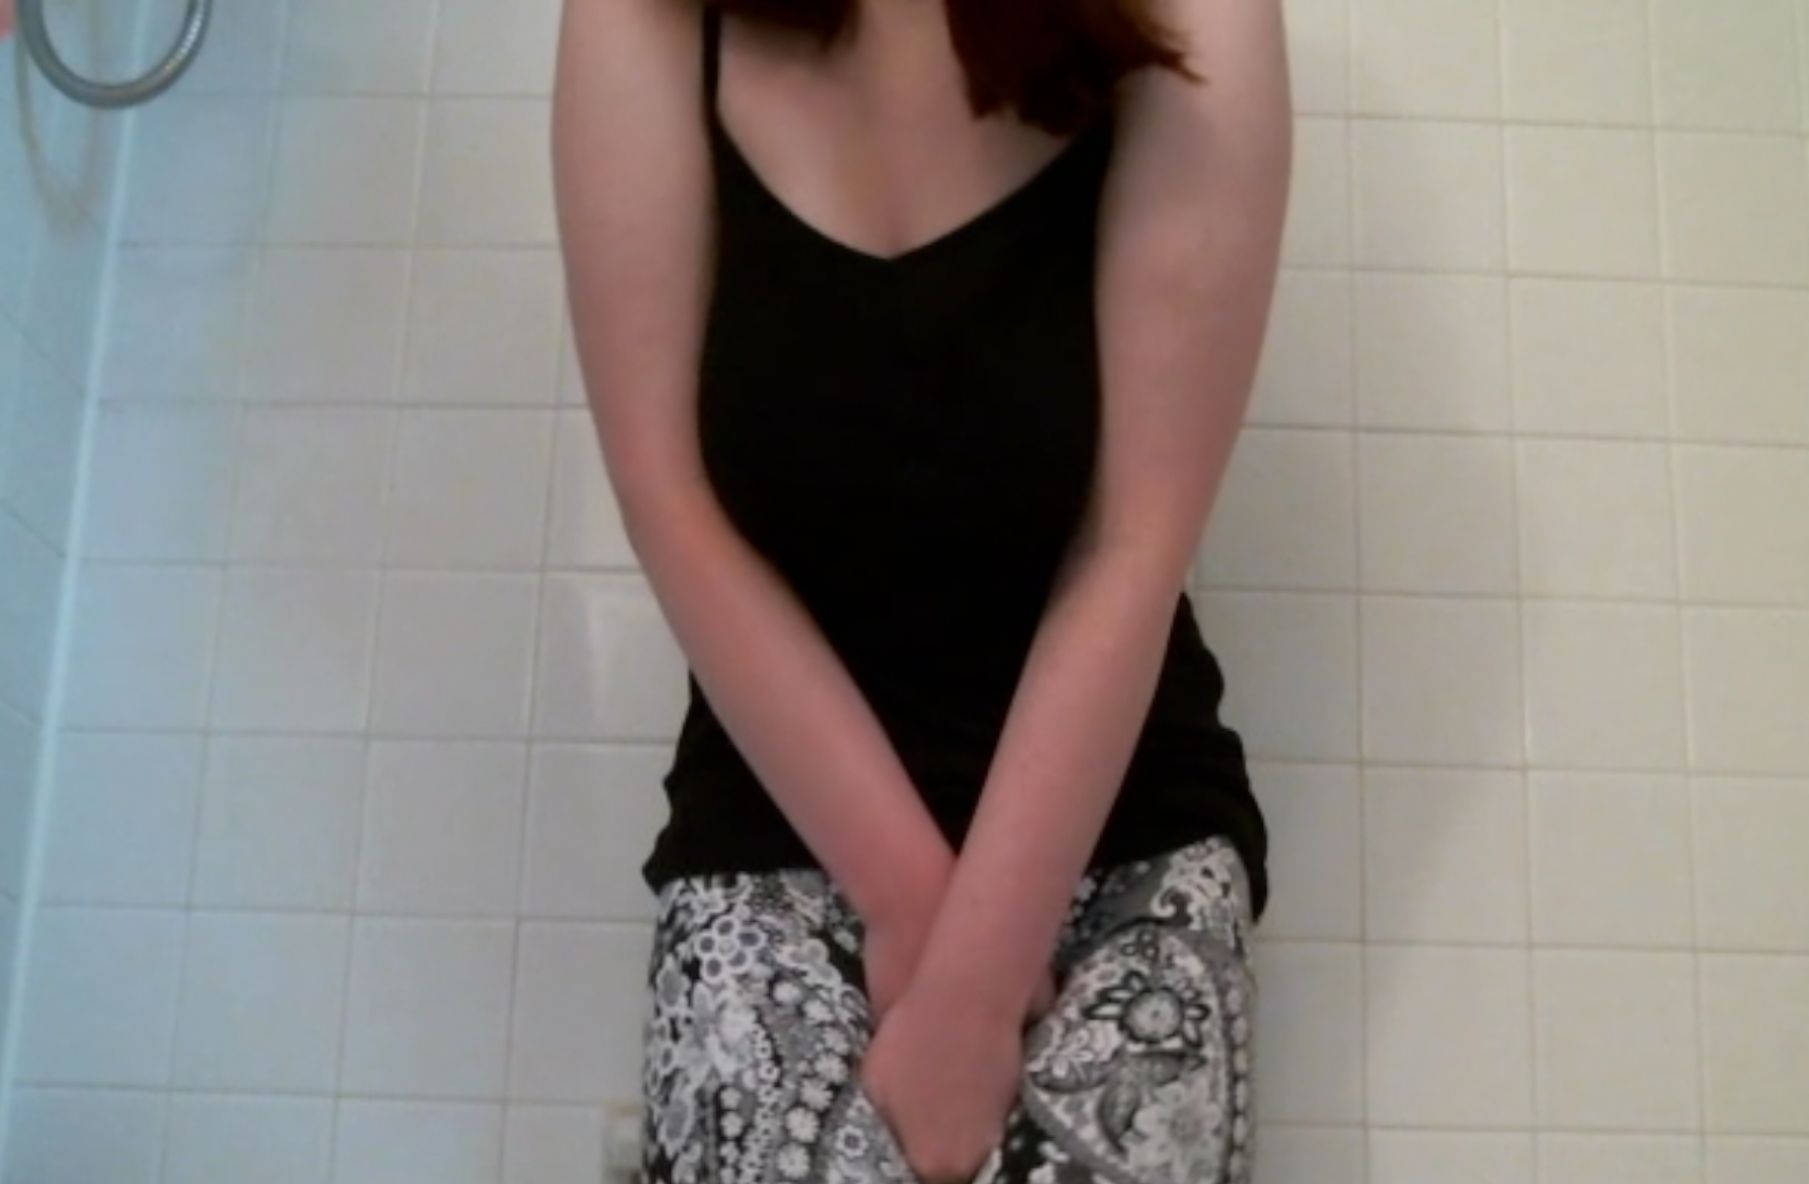 Unfortunately, iWantClips and APClips do not allow pee...